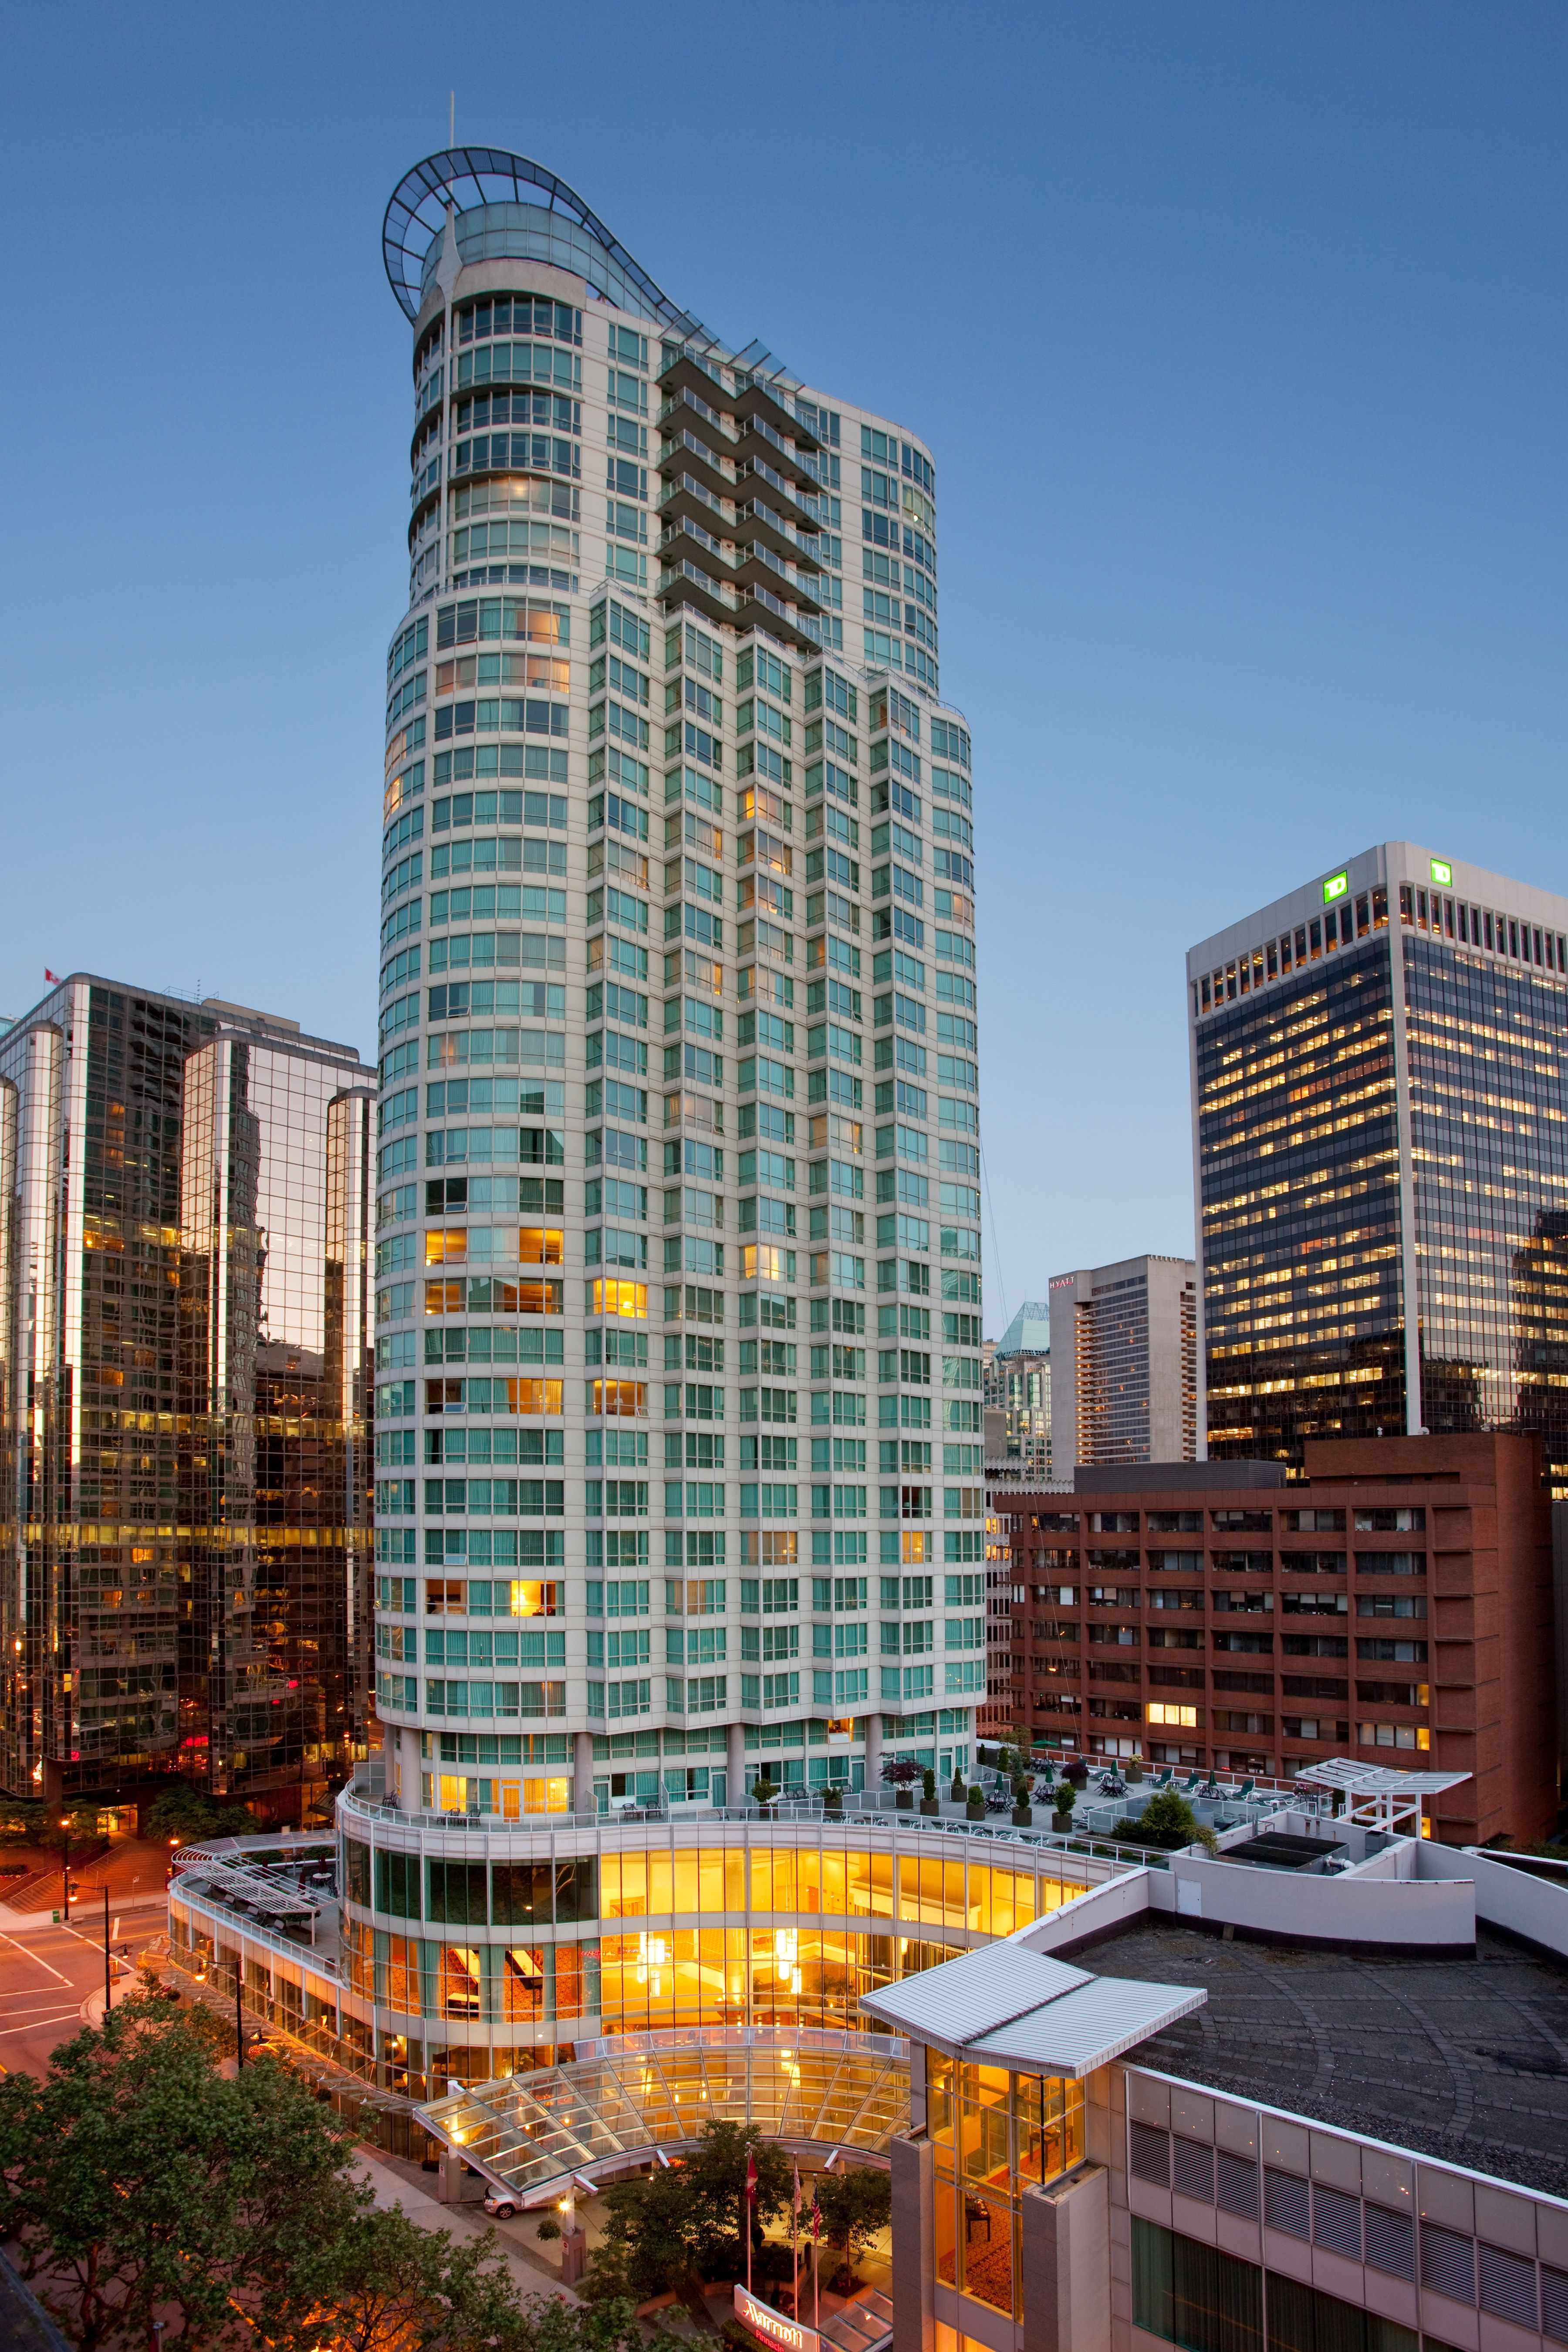 Vancouver Marriott Downtown Hotel In Bc Located The Heart Of S Coal